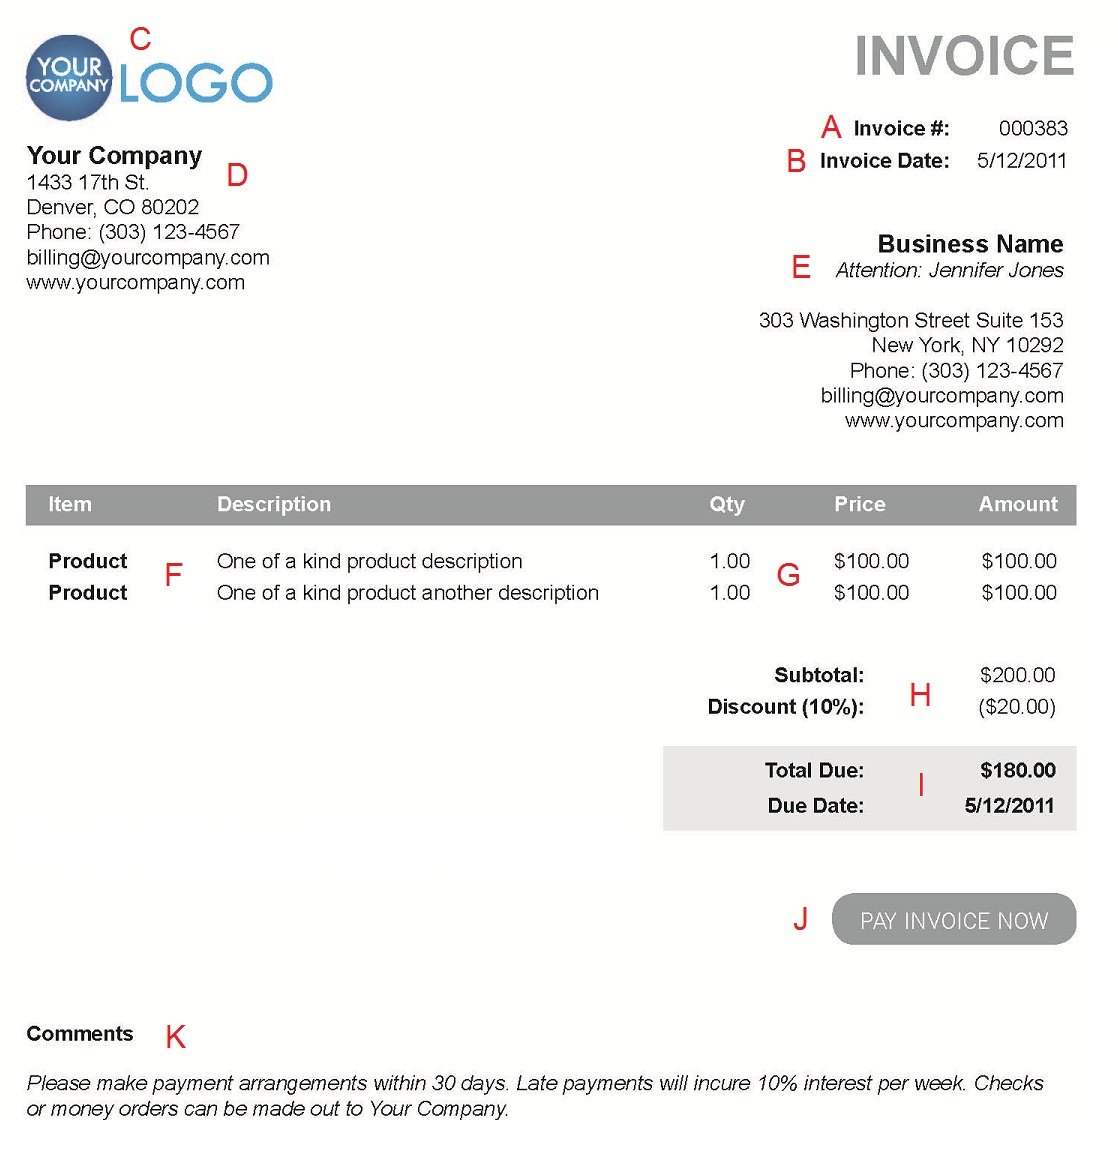 Centralasianshepherdus  Splendid The  Different Sections Of An Electronic Payment Invoice With Magnificent A  With Adorable How To Make Invoice On Word Also Express Invoice Torrent In Addition Flooring Invoice Template And Invoice Spreadsheet Template As Well As Invoice Form Excel Additionally Nissan Pathfinder Invoice Price From Paysimplecom With Centralasianshepherdus  Magnificent The  Different Sections Of An Electronic Payment Invoice With Adorable A  And Splendid How To Make Invoice On Word Also Express Invoice Torrent In Addition Flooring Invoice Template From Paysimplecom